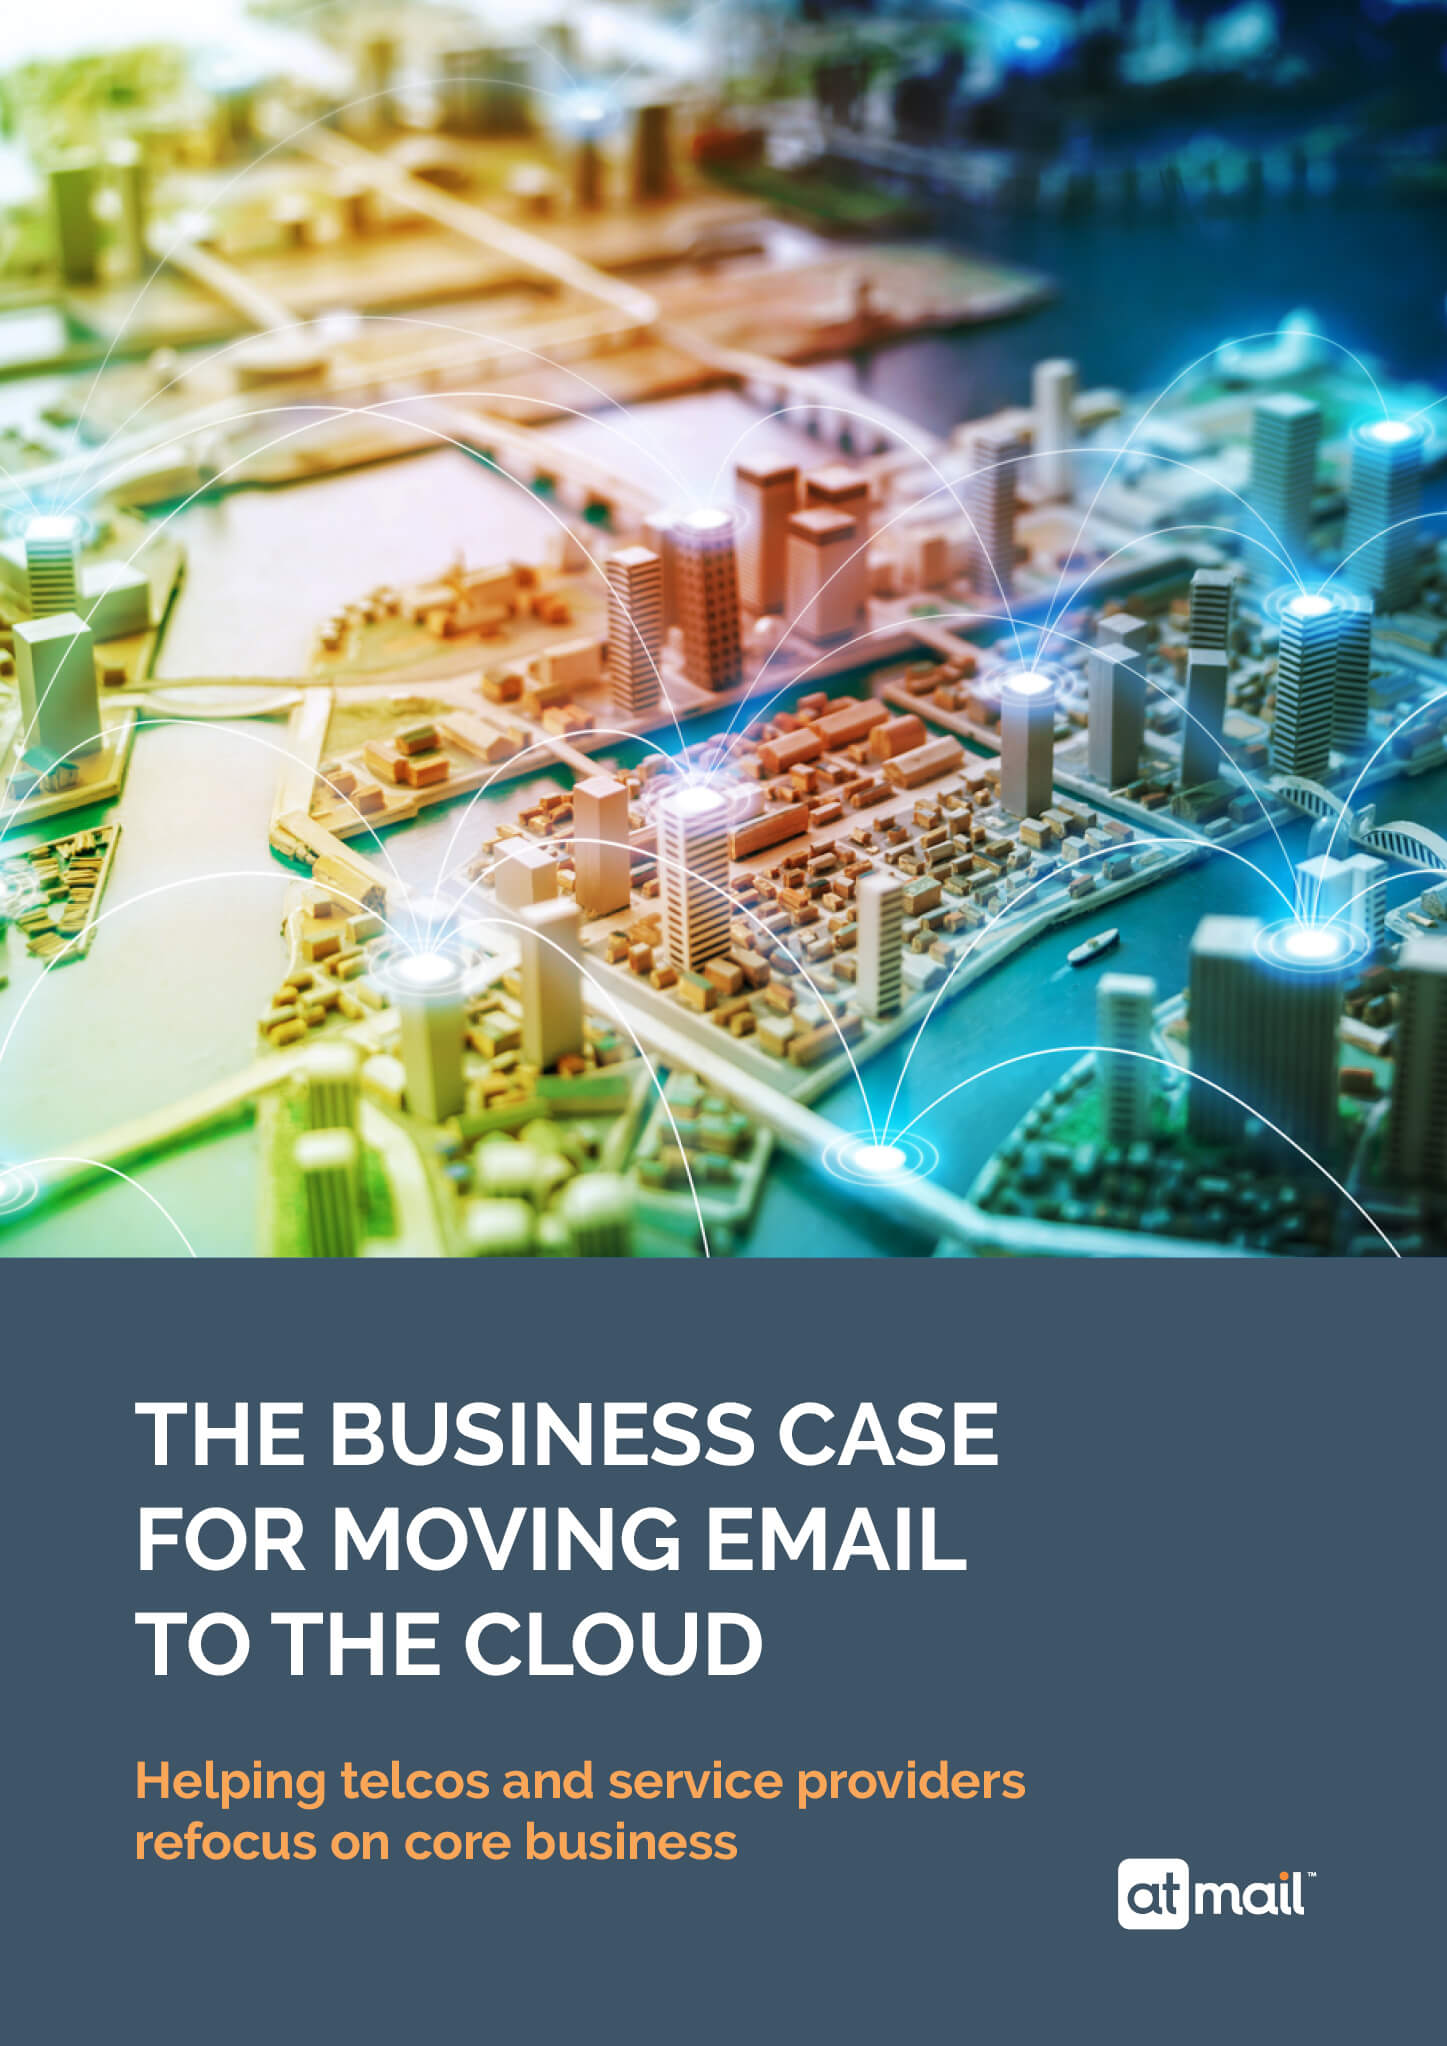 The Business Case for Moving Email to the Cloud - atmail cloud